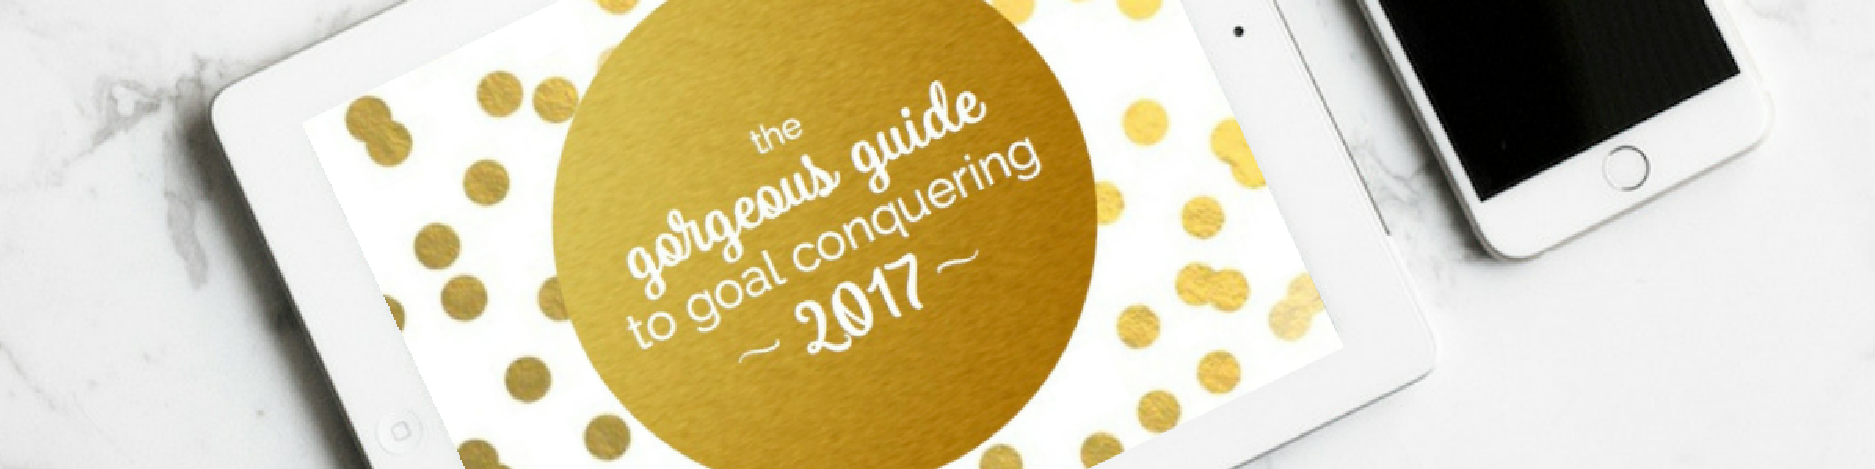 The Gorgeous Guide to Goal Conquering 2017